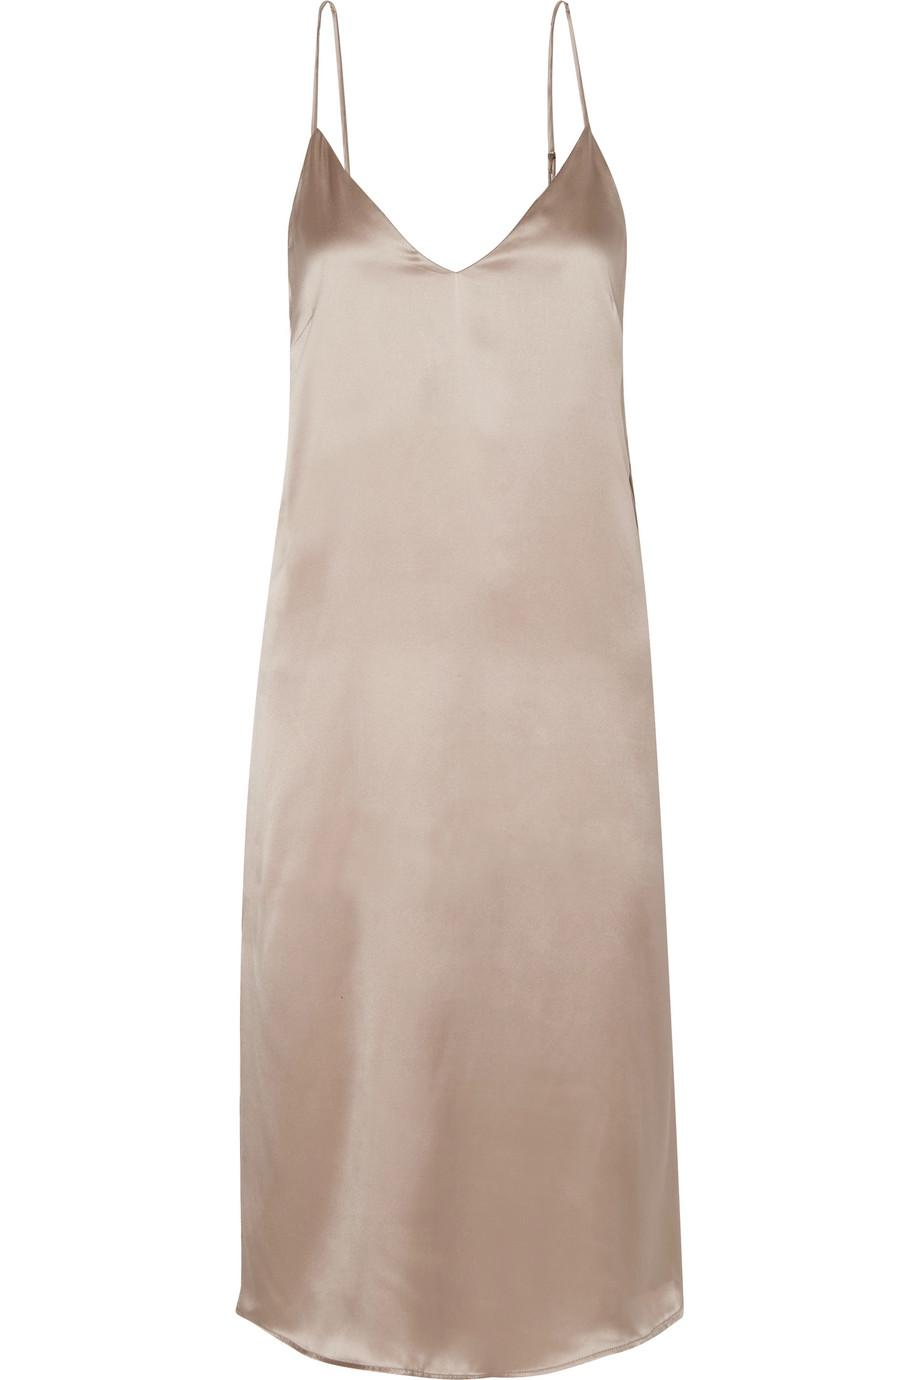 9a0b6e3b78ce9 Anine Bing Gemma Silk-satin Midi Dress in Natural - Lyst